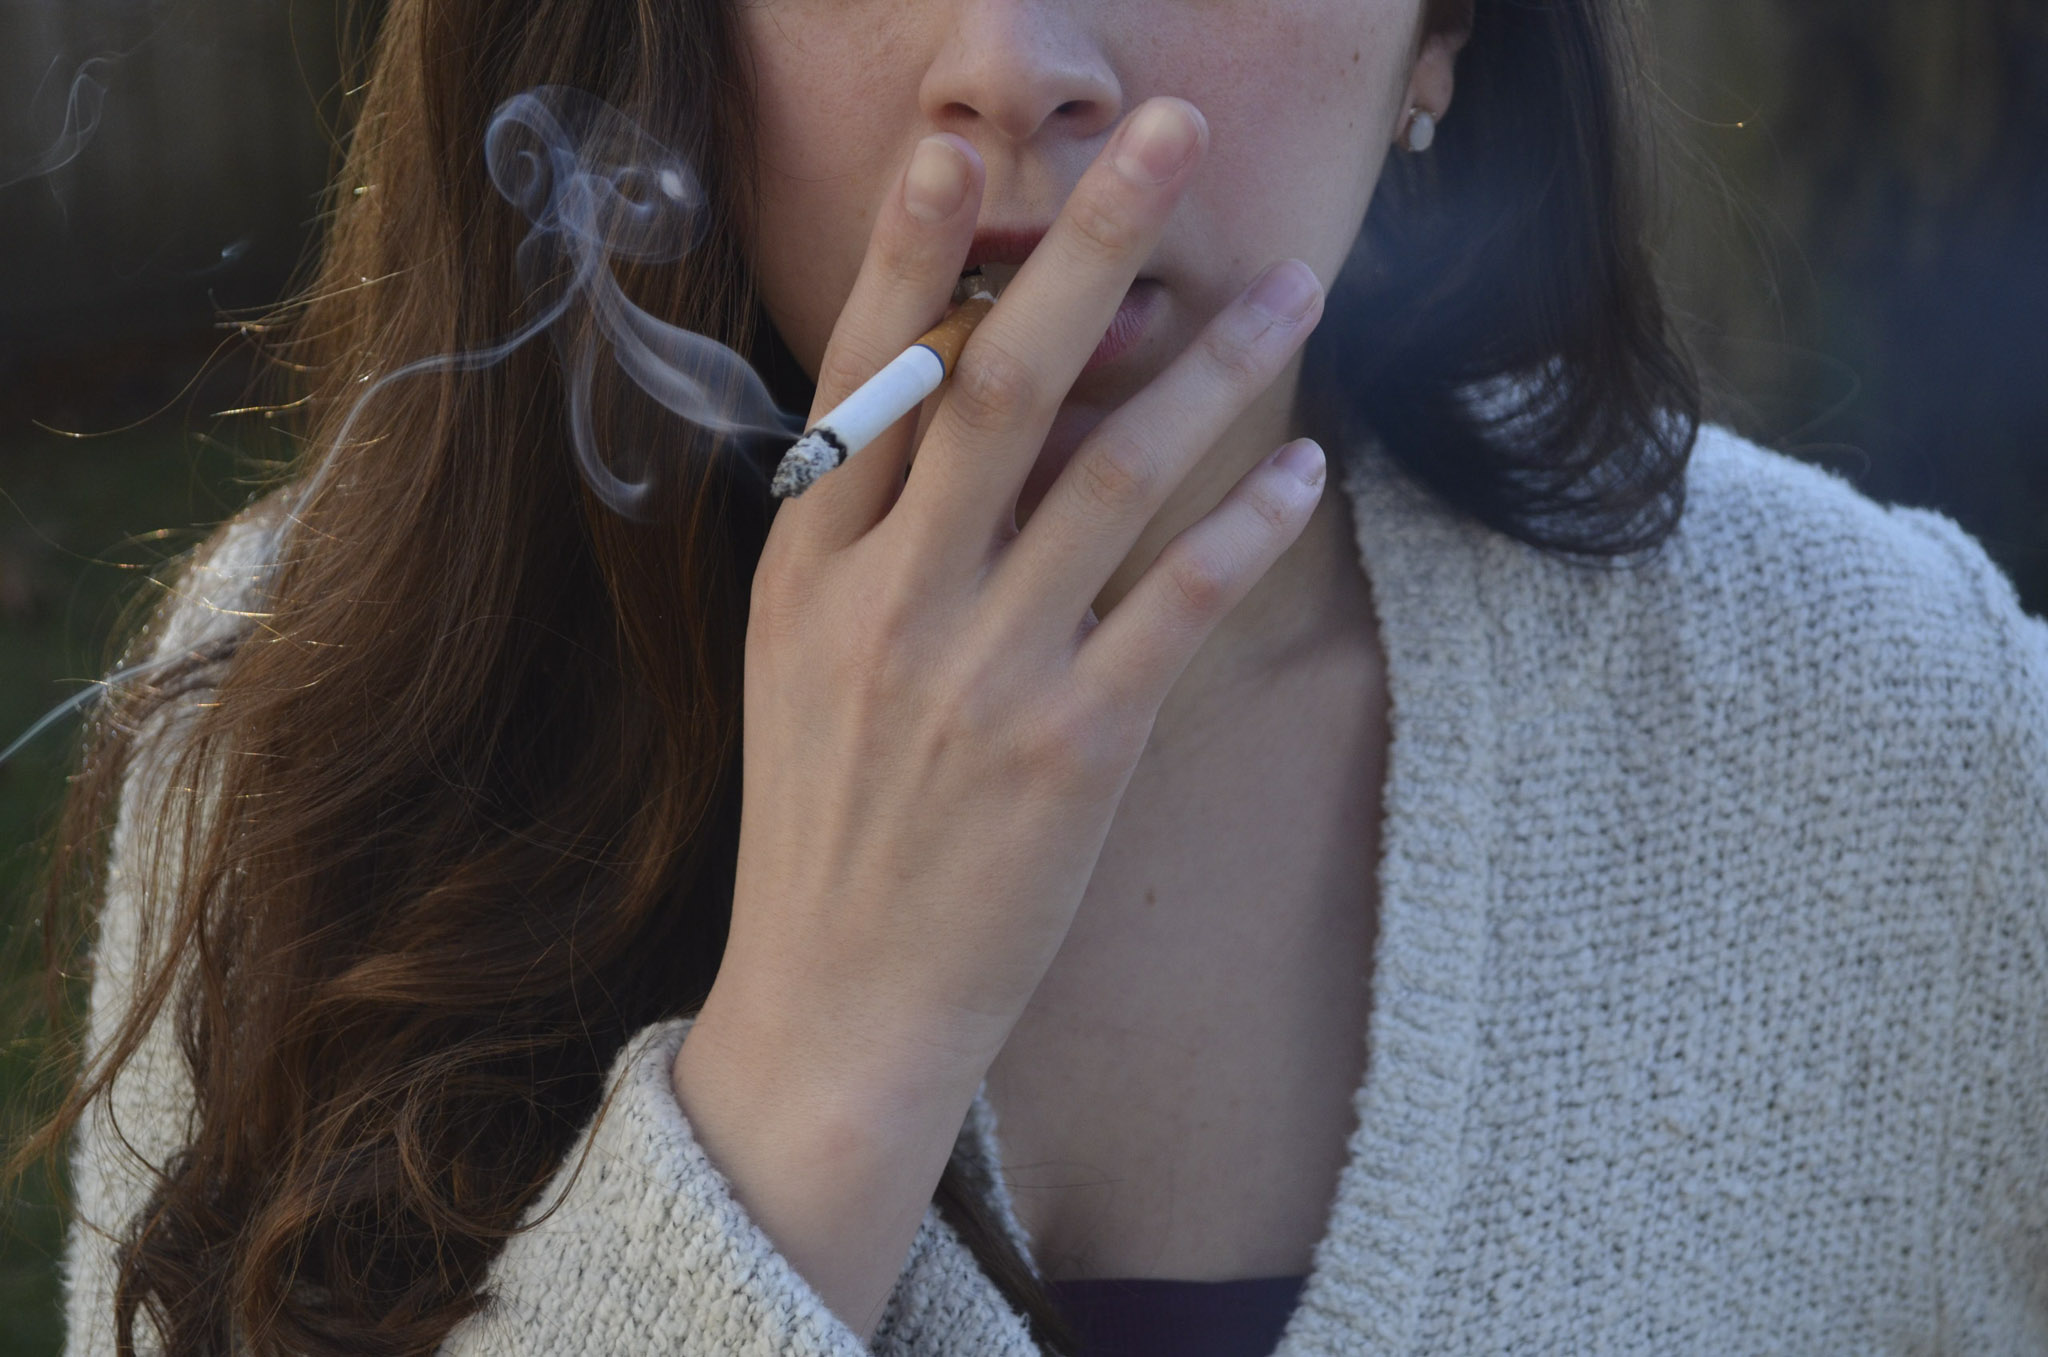 STAR // Cara Fuqua   Public smoking has come under increasingly strict legislation as the effects of second-hand smoke become more well-known.